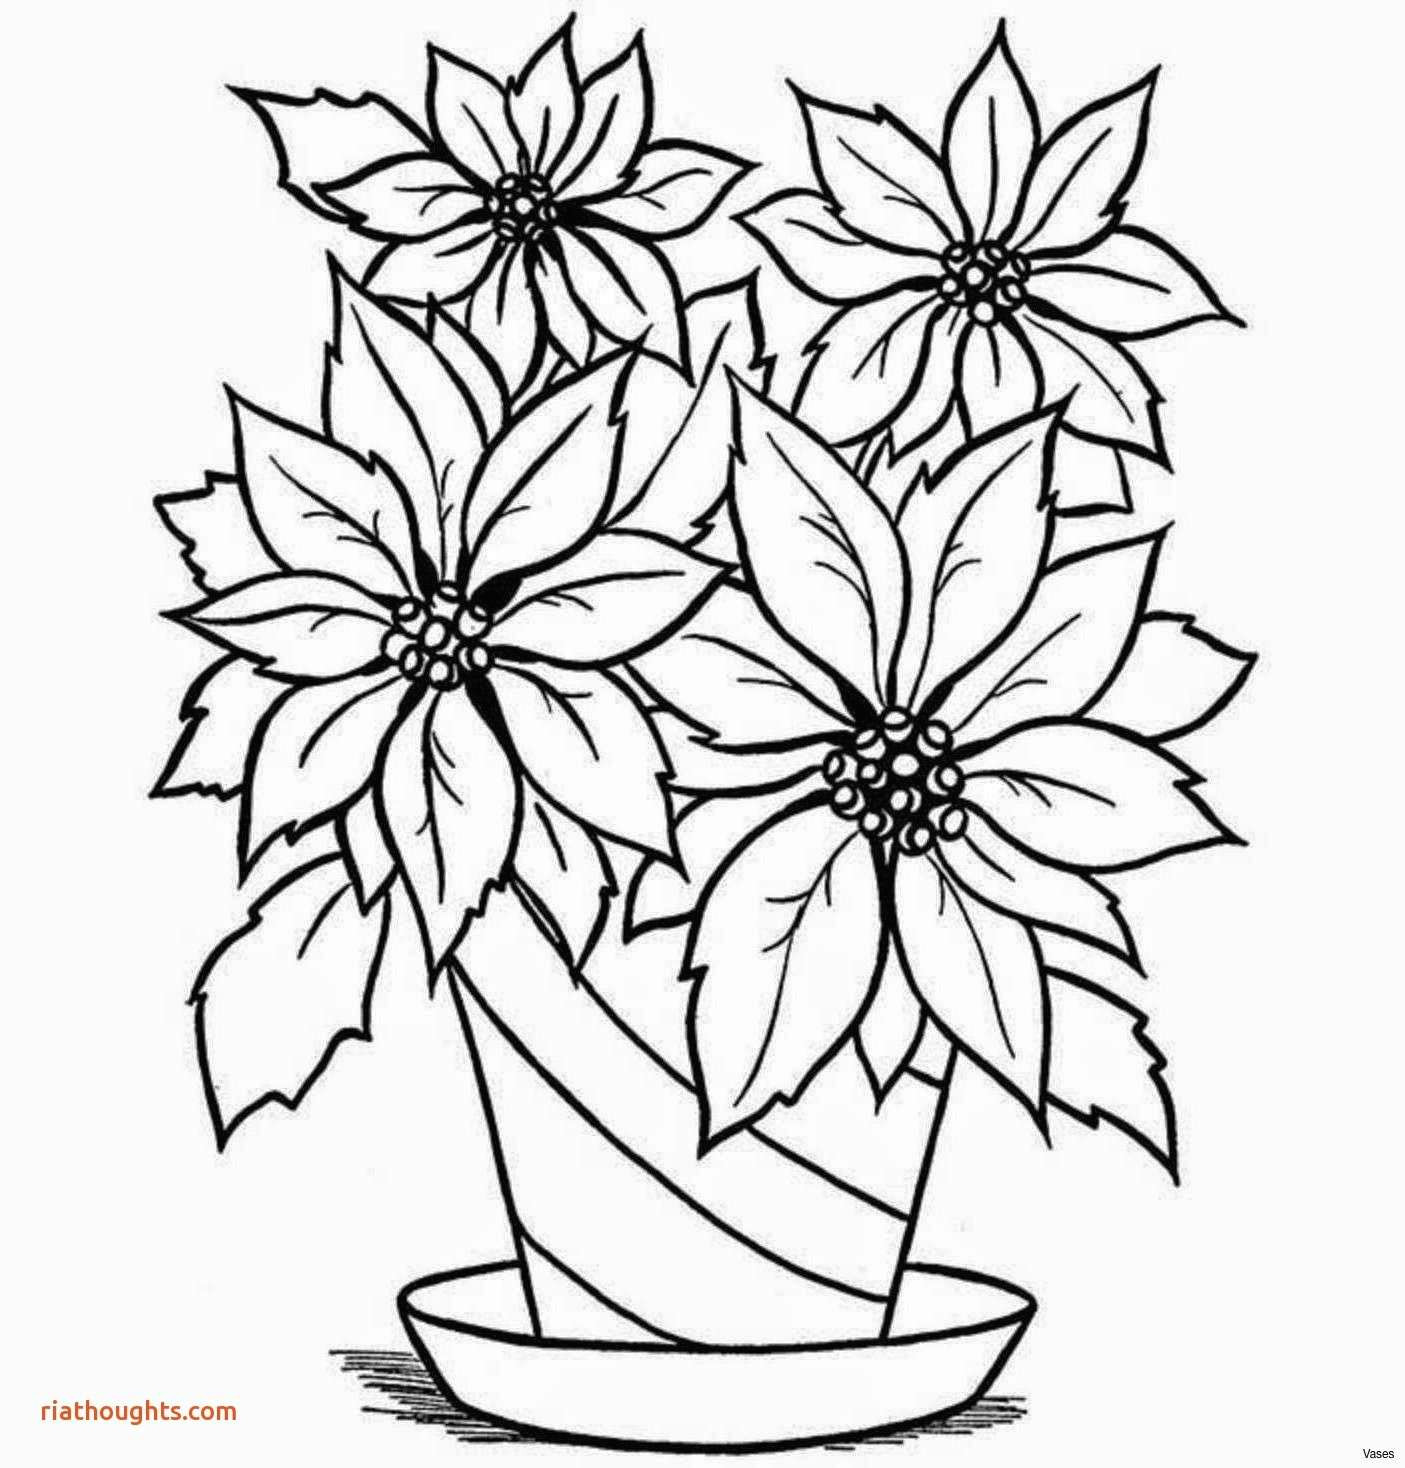 Drawing Flowers Pic 25 Fancy Draw A Flower Helpsite Us